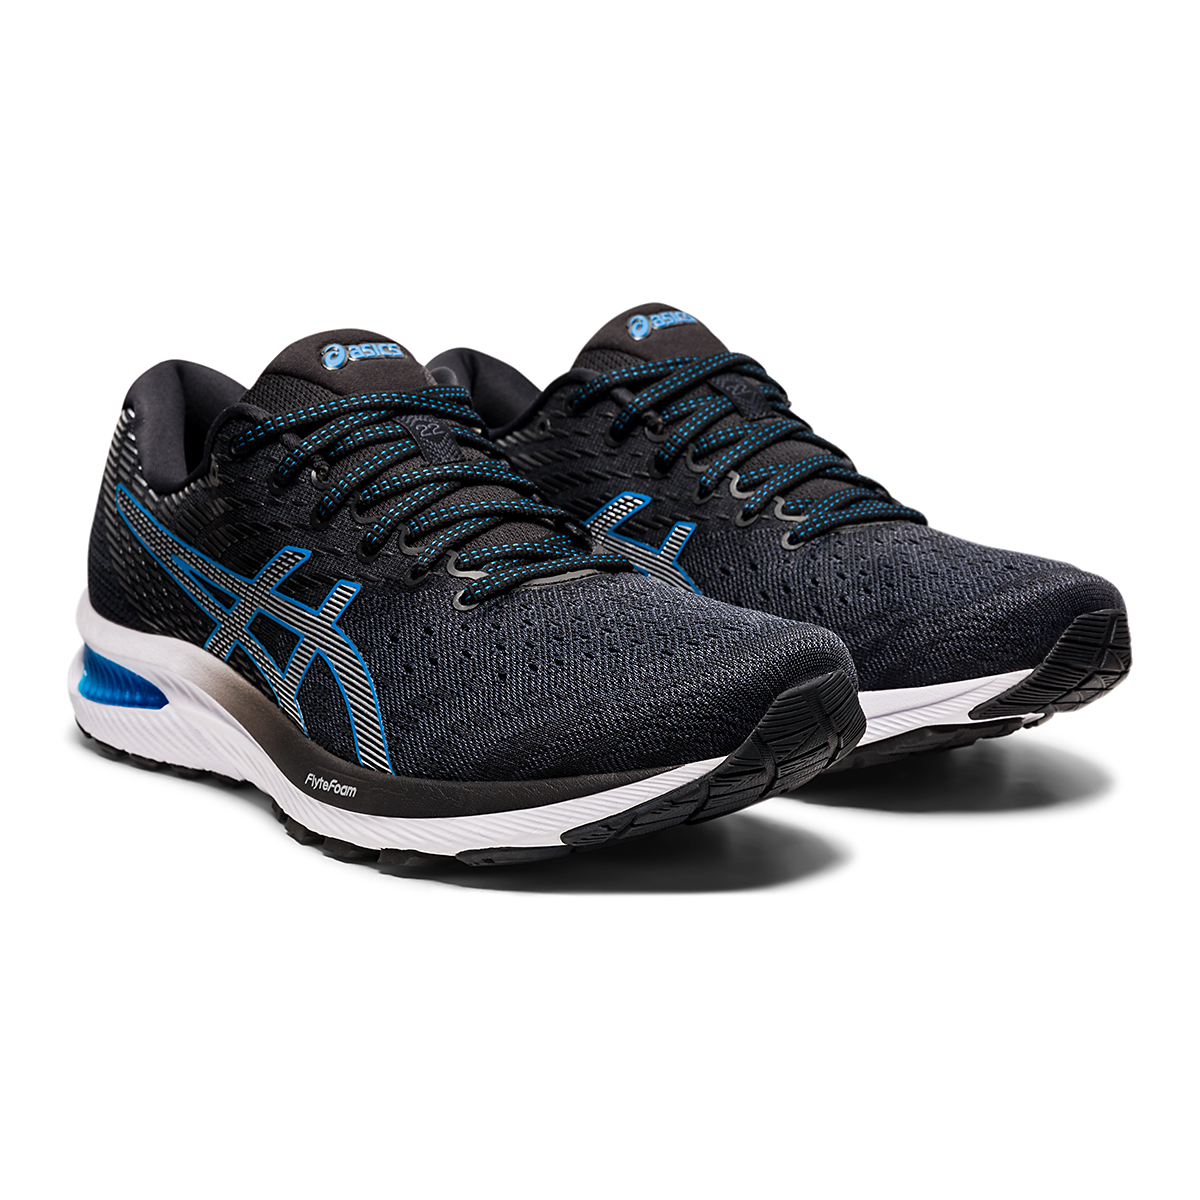 Men's Asics GEL-Cumulus 22 Running Shoe - Color: Carrier Grey/Pure Silver - Size: 7 - Width: Regular, Carrier Grey/Pure Silver, large, image 3